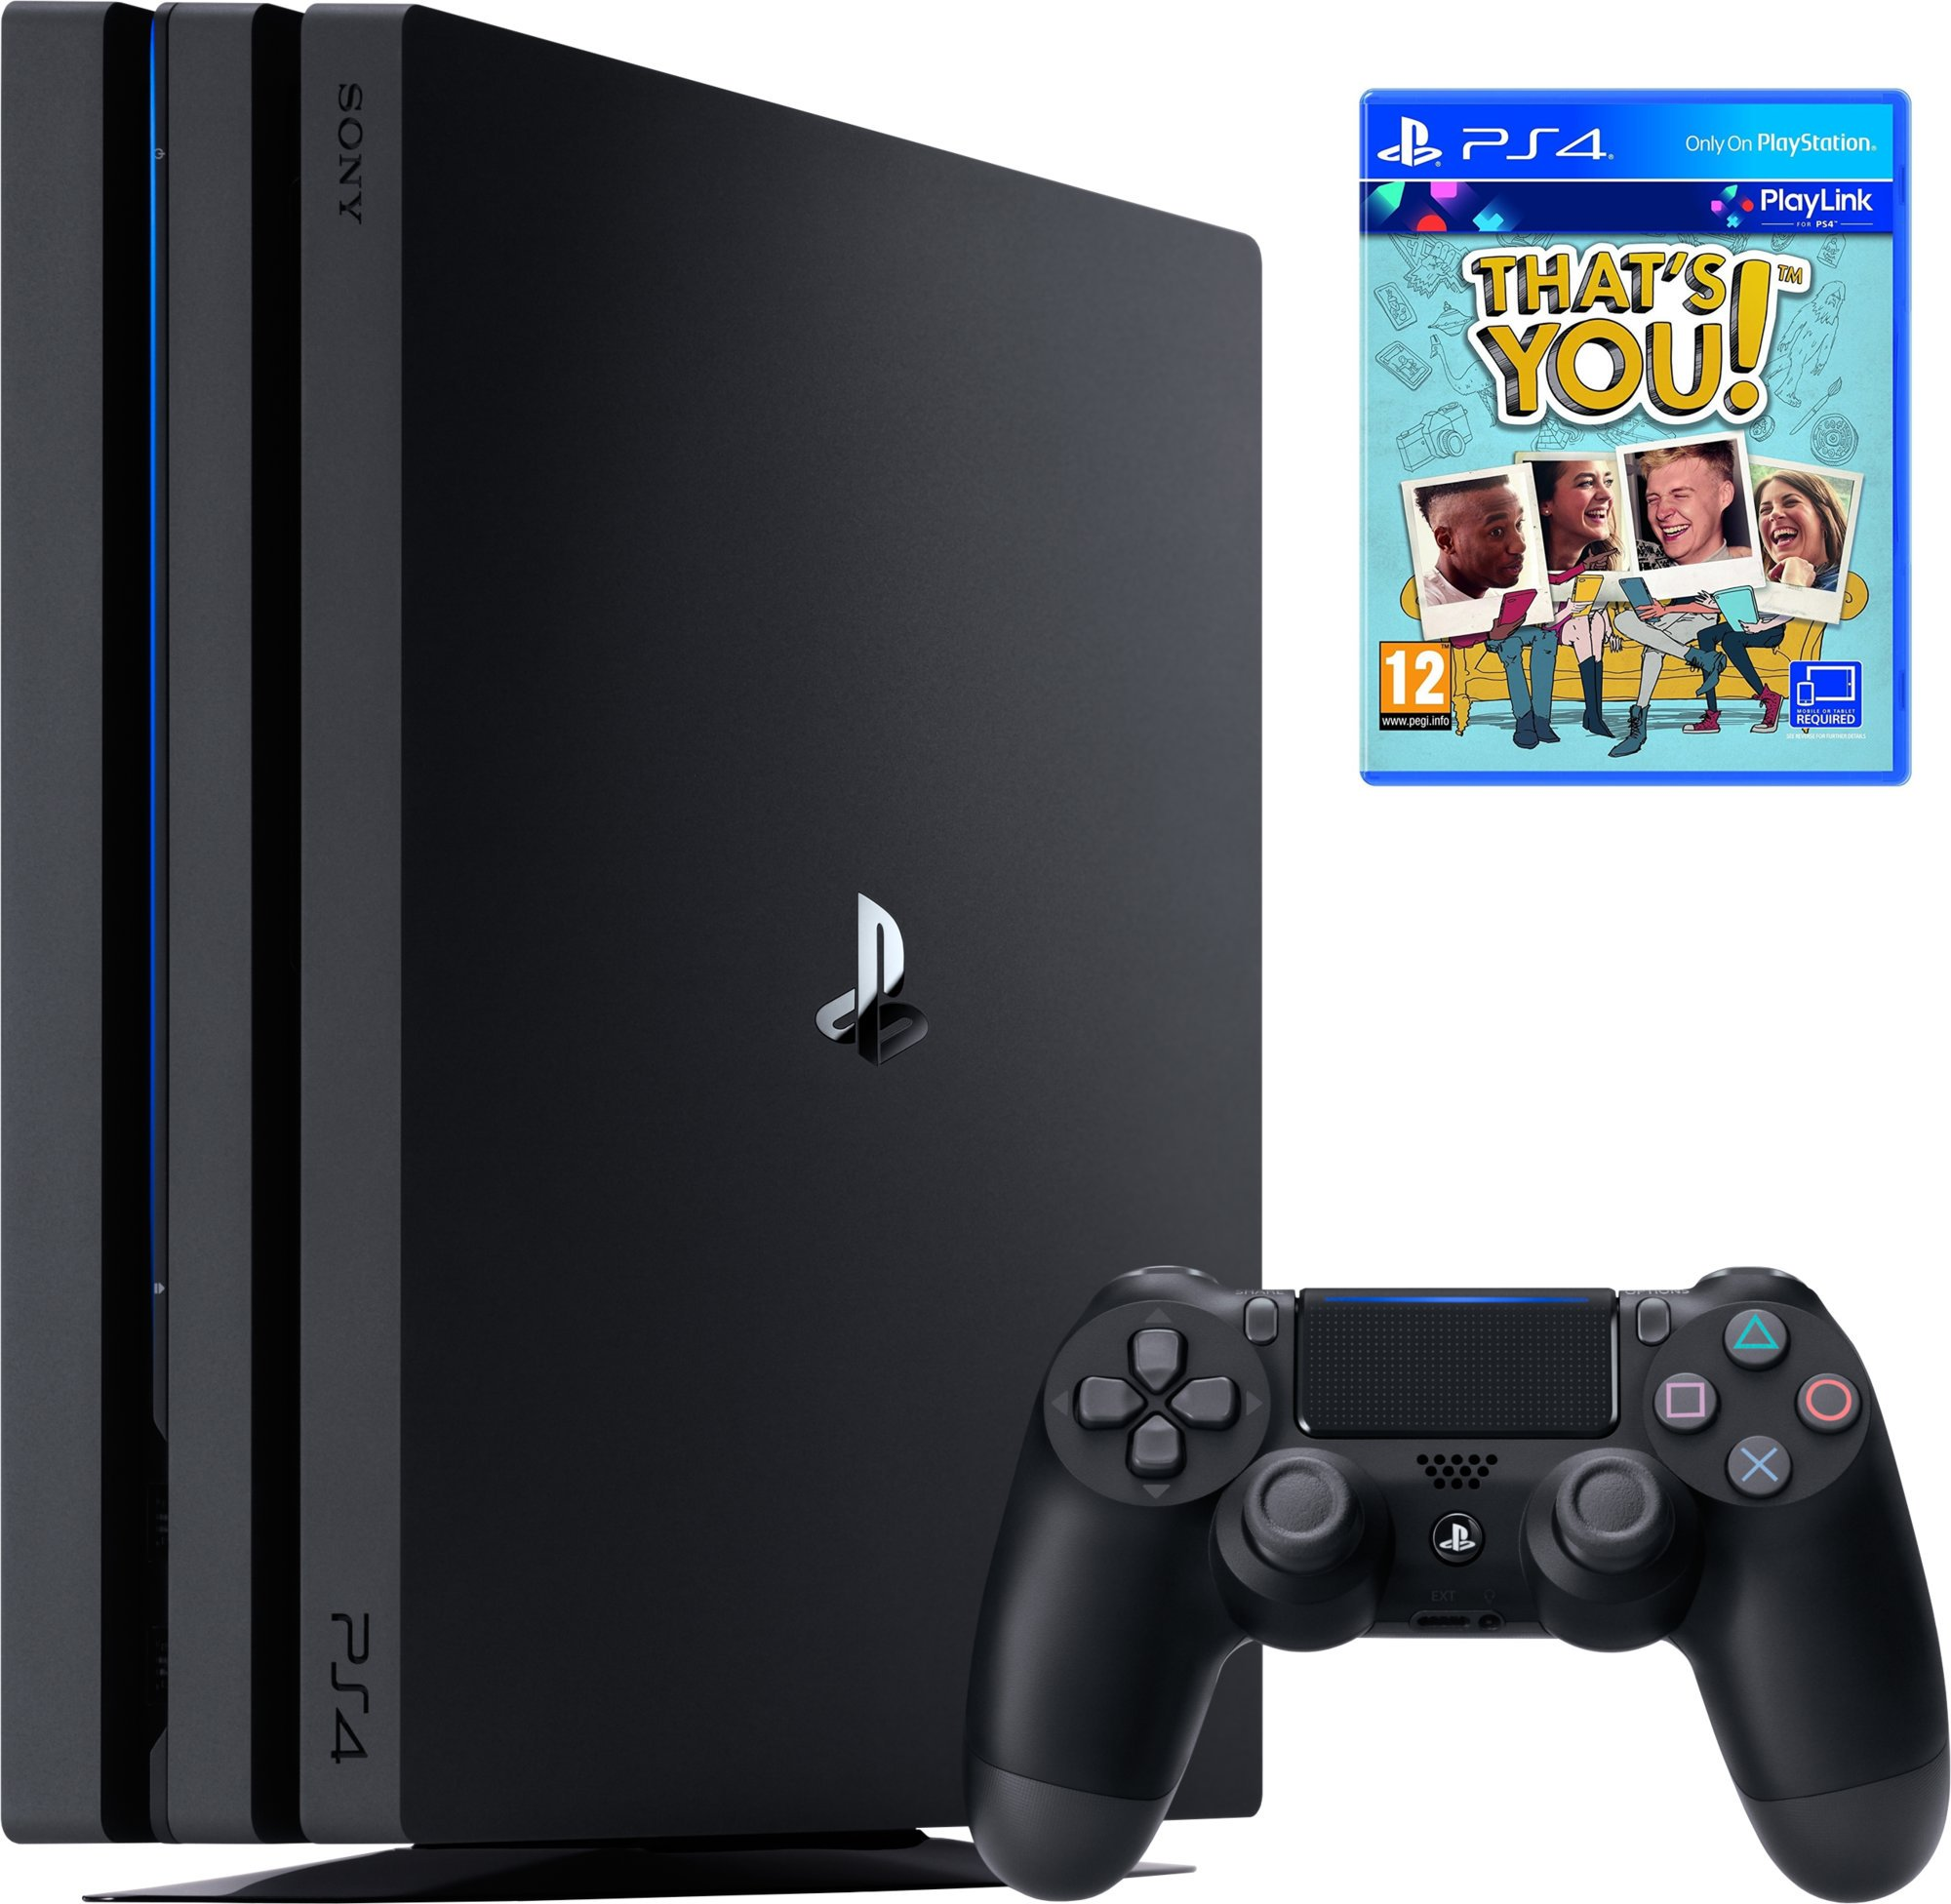 PS4 Pro - Playstation 4 Pro 1TB + That´s you!